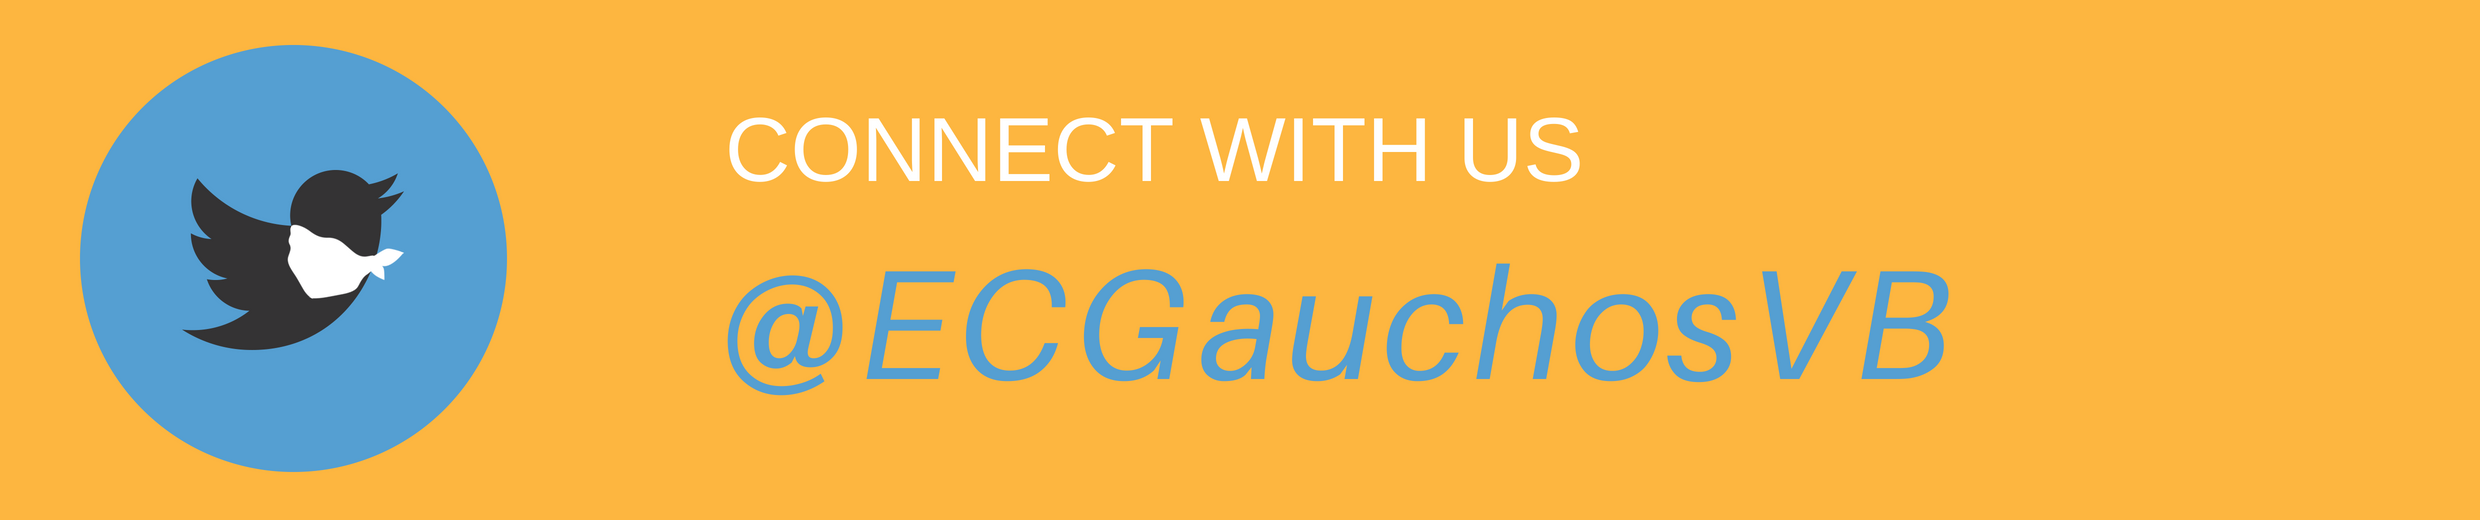 Connect with us @ECGauchosVB